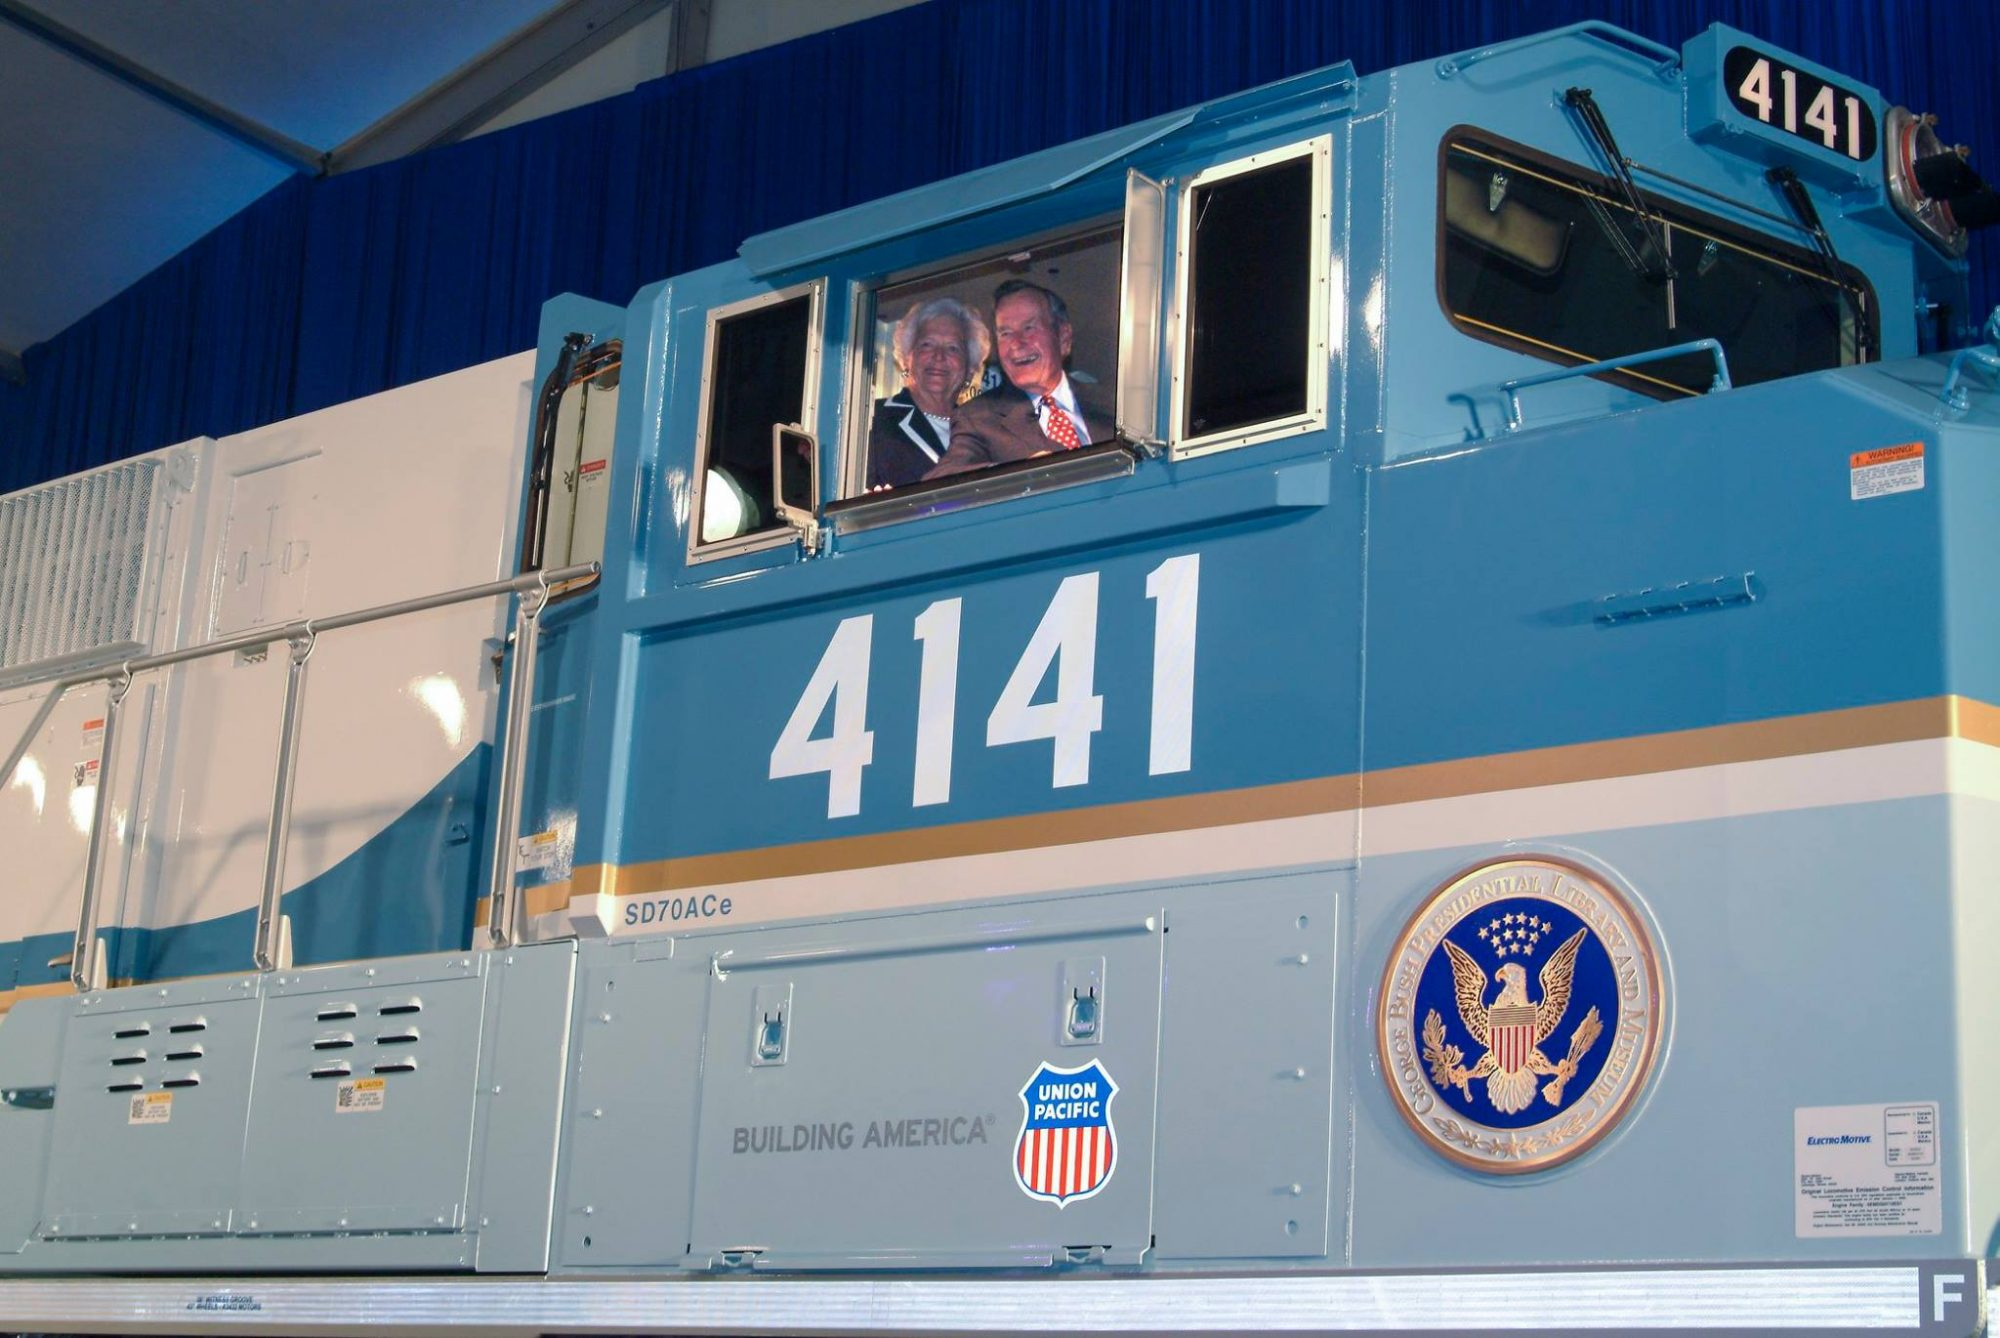 Union Pacific 4141 George Bush